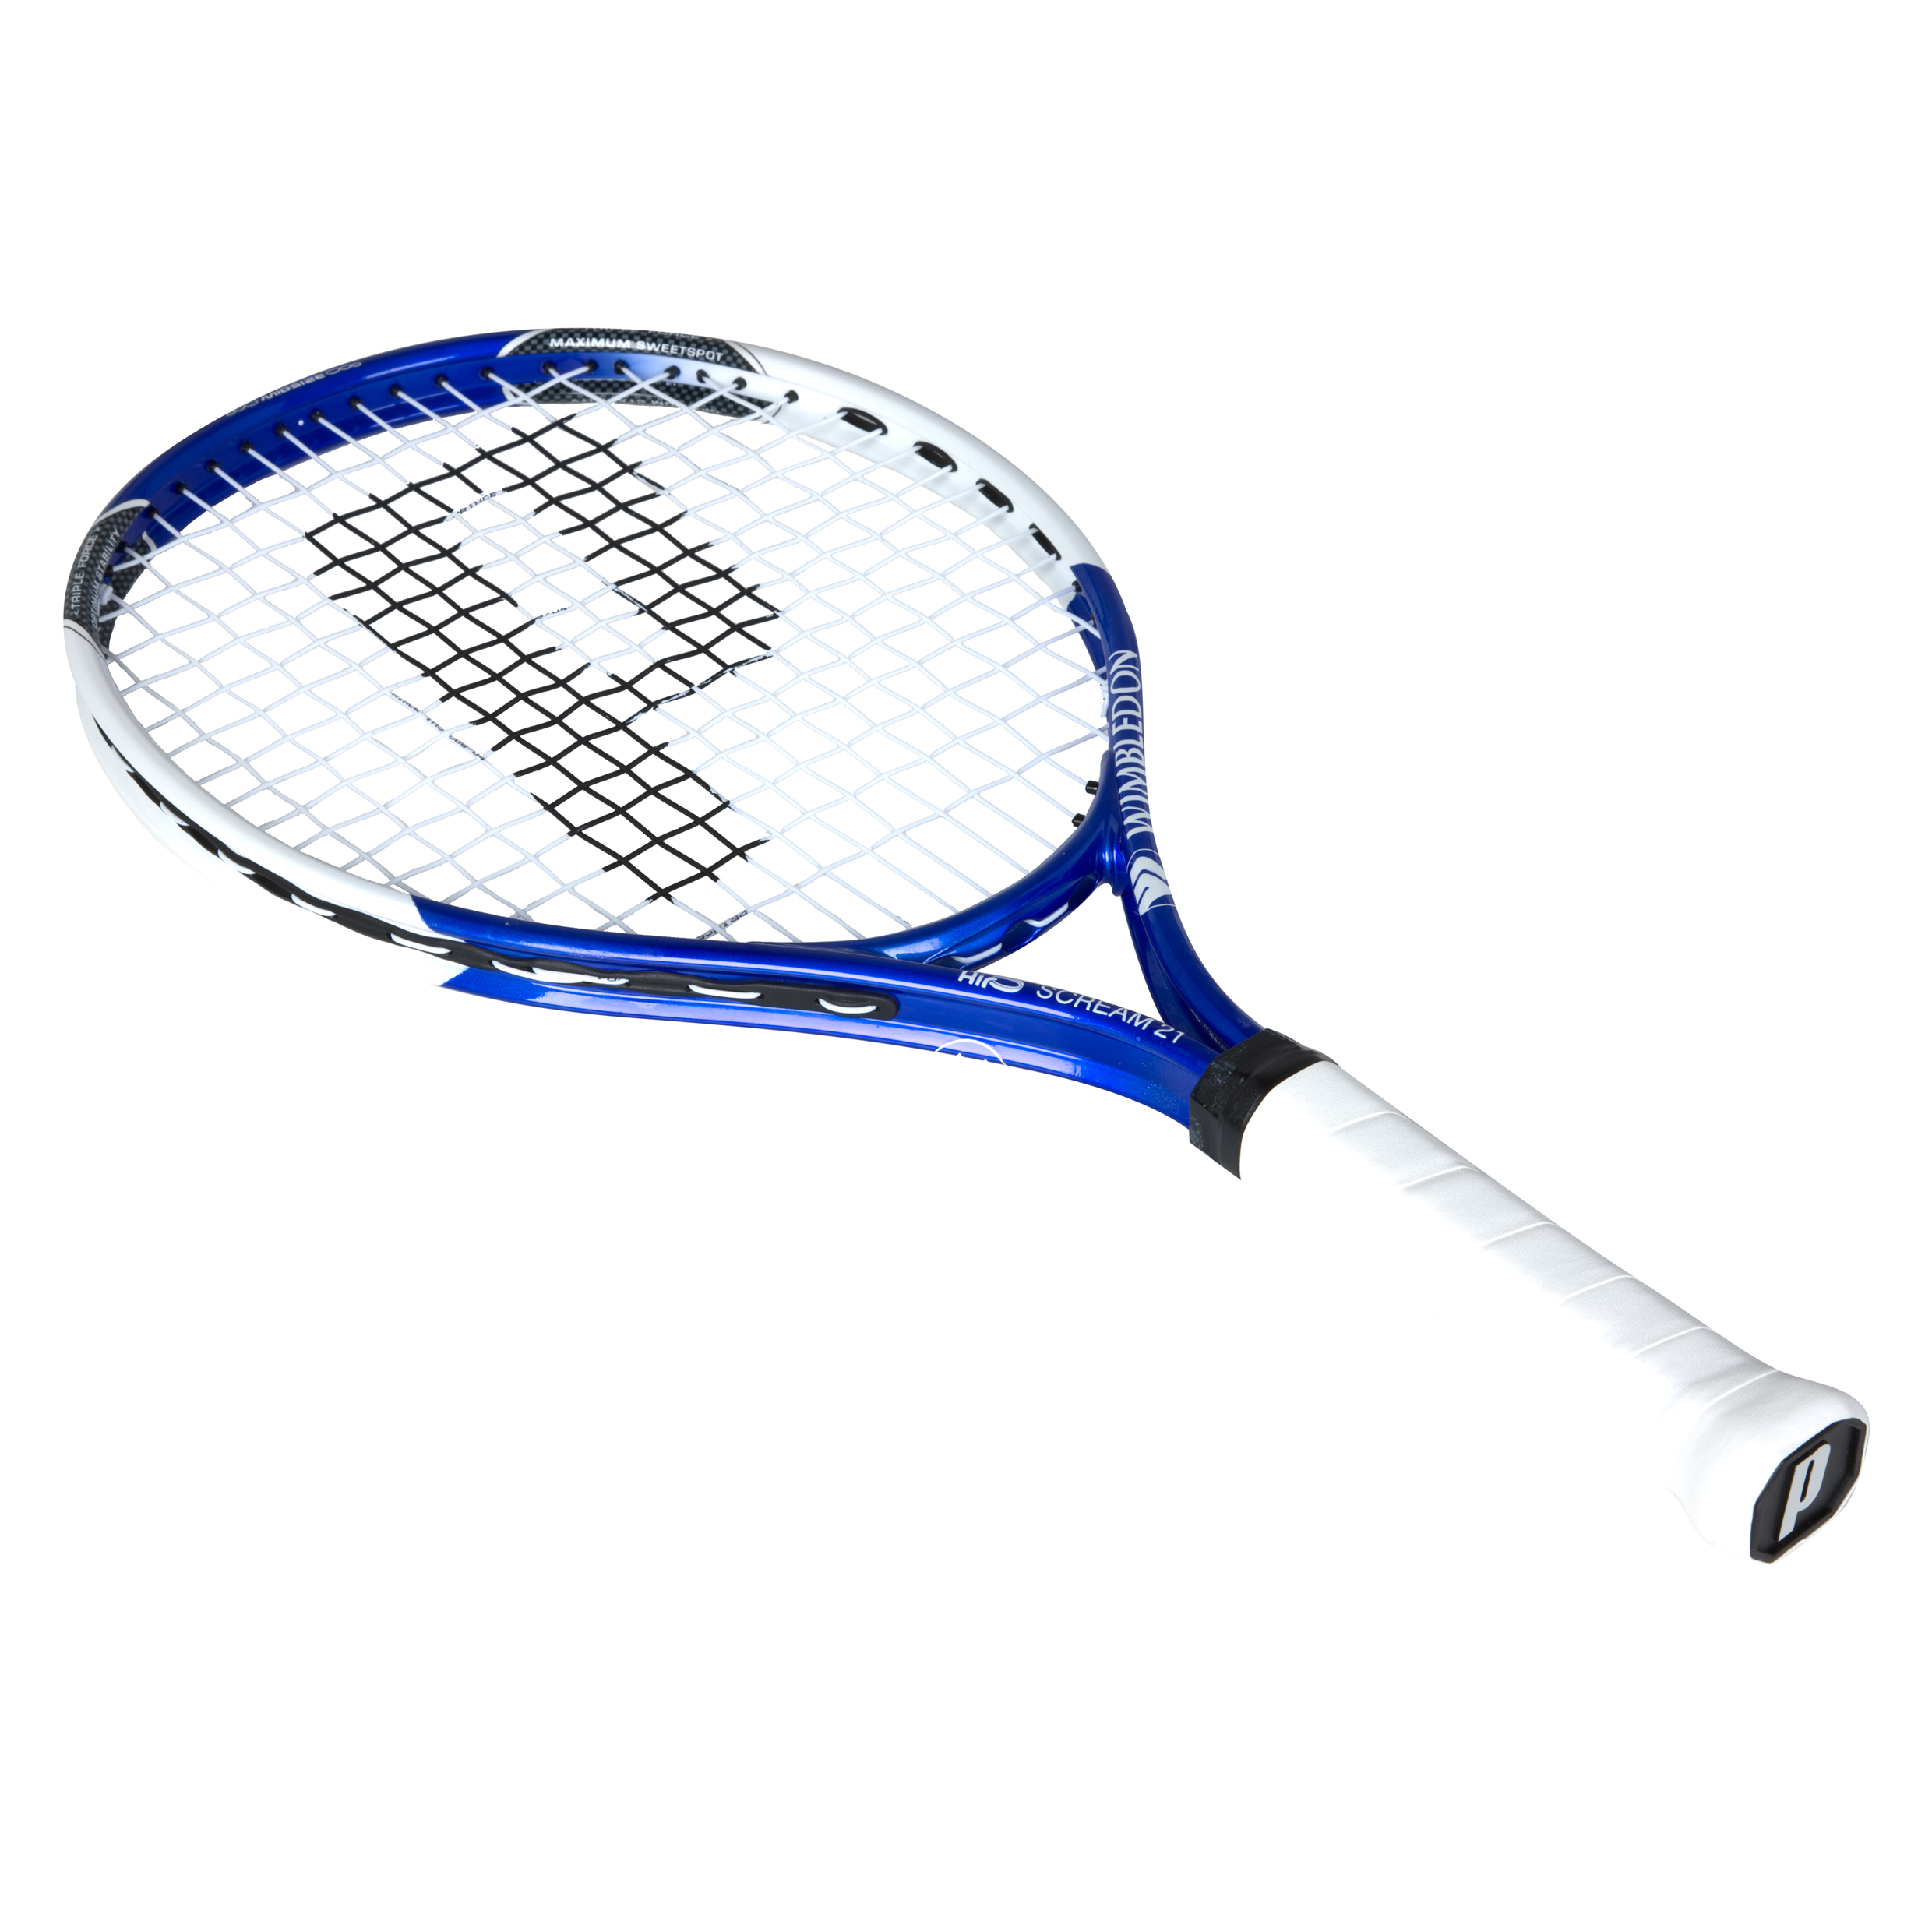 Wimbledon By Prince Airo Scream 21 Tennis Racket - Blue/White